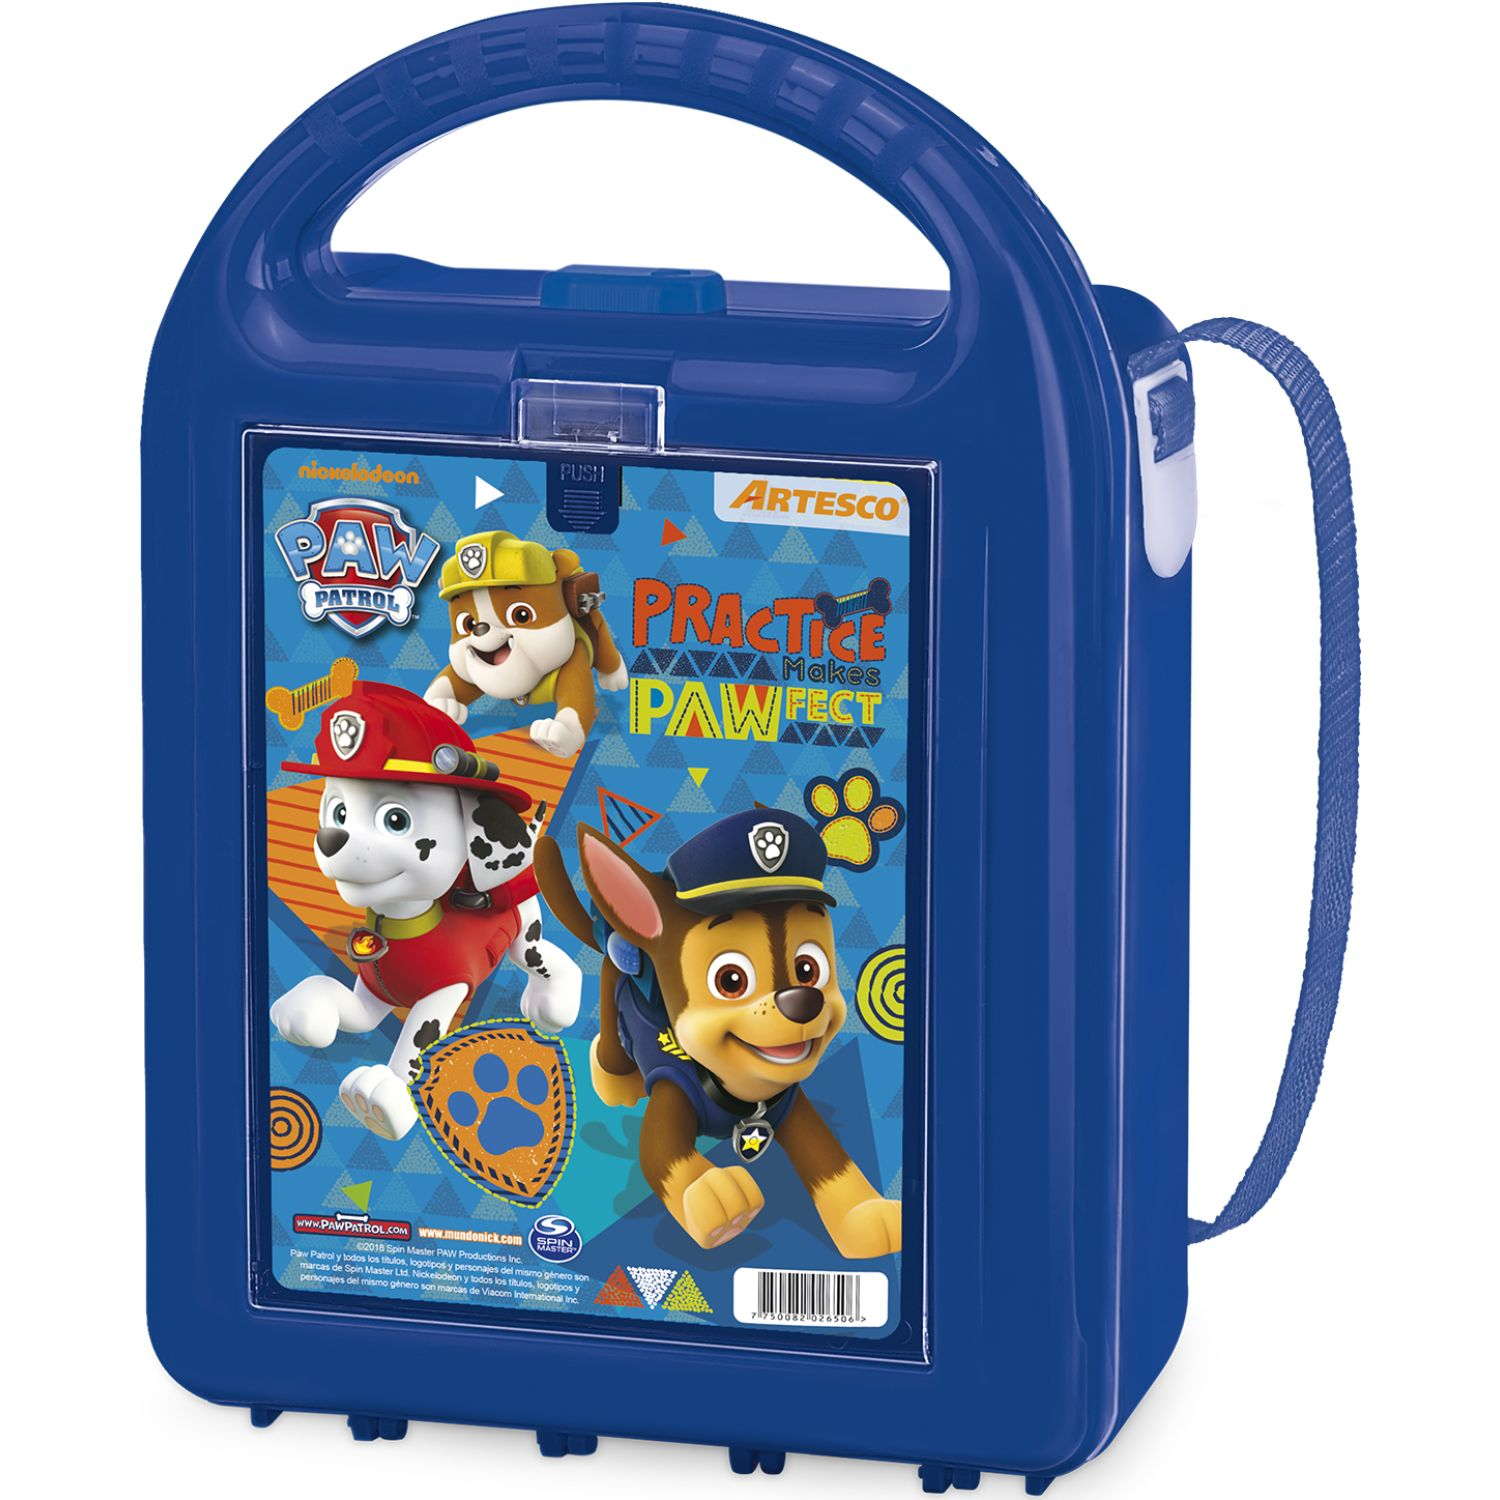 Paw Patrol lonchera sm nutribox c/tapers Azul